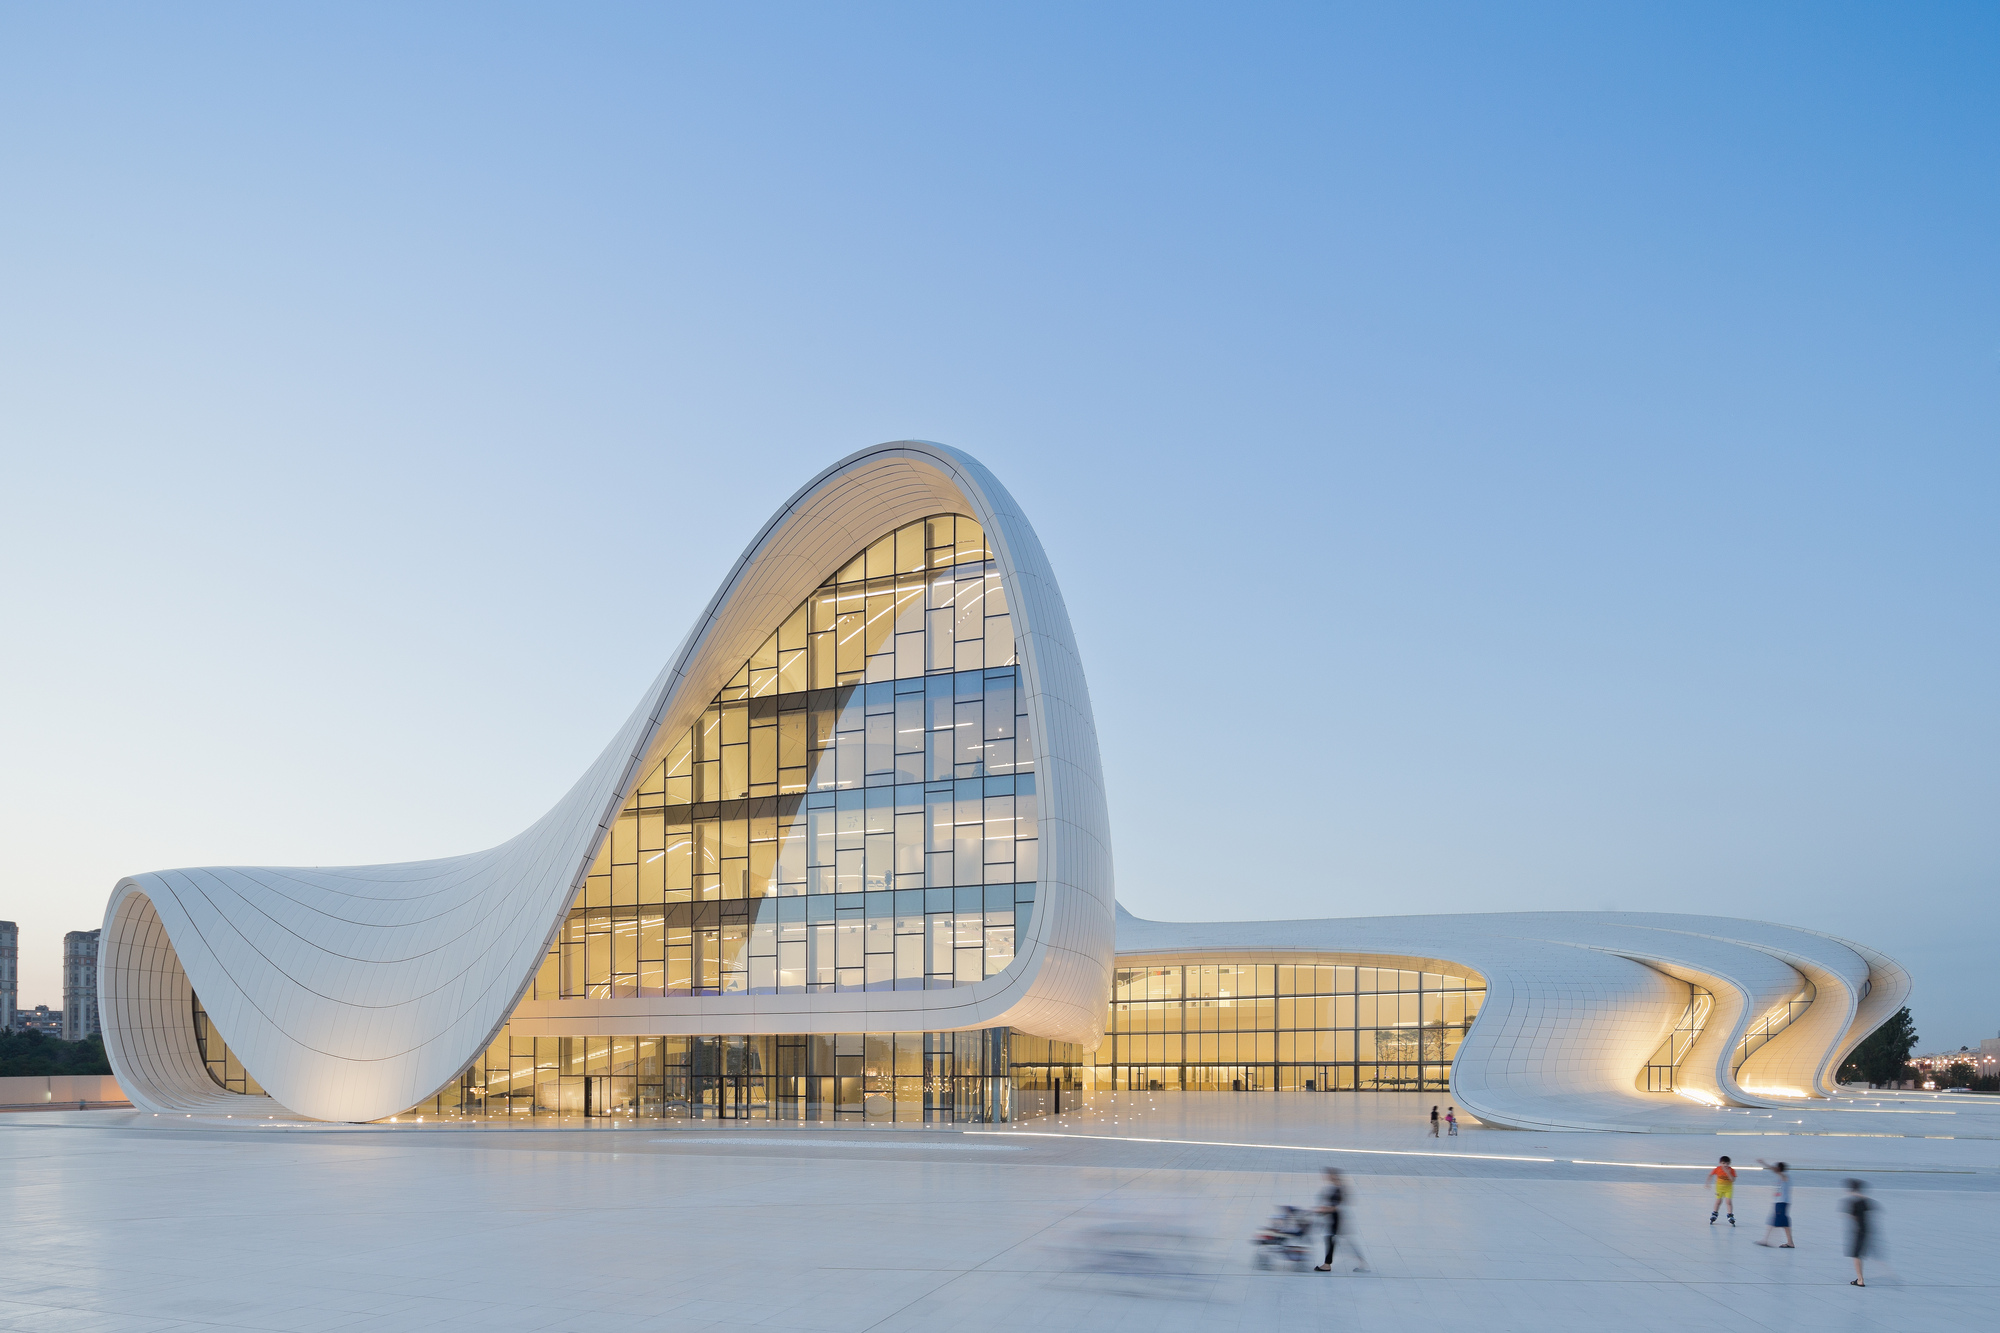 Heydar Aliyev Center by Zaha Hadid Architects in Azerbaijan